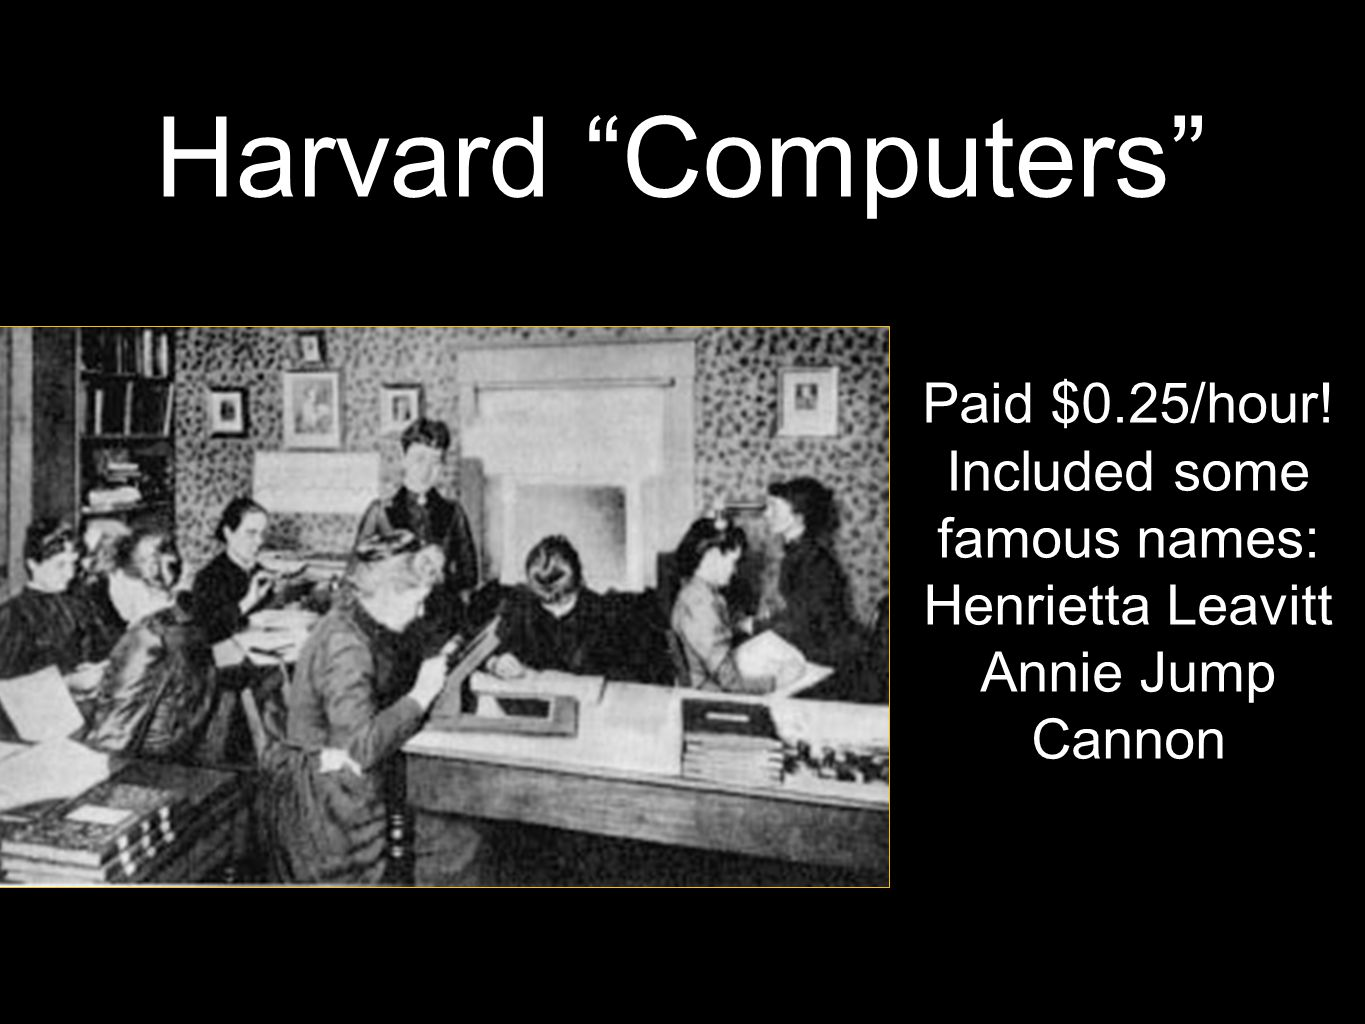 Harvard Computers Paid $0.25/hour.